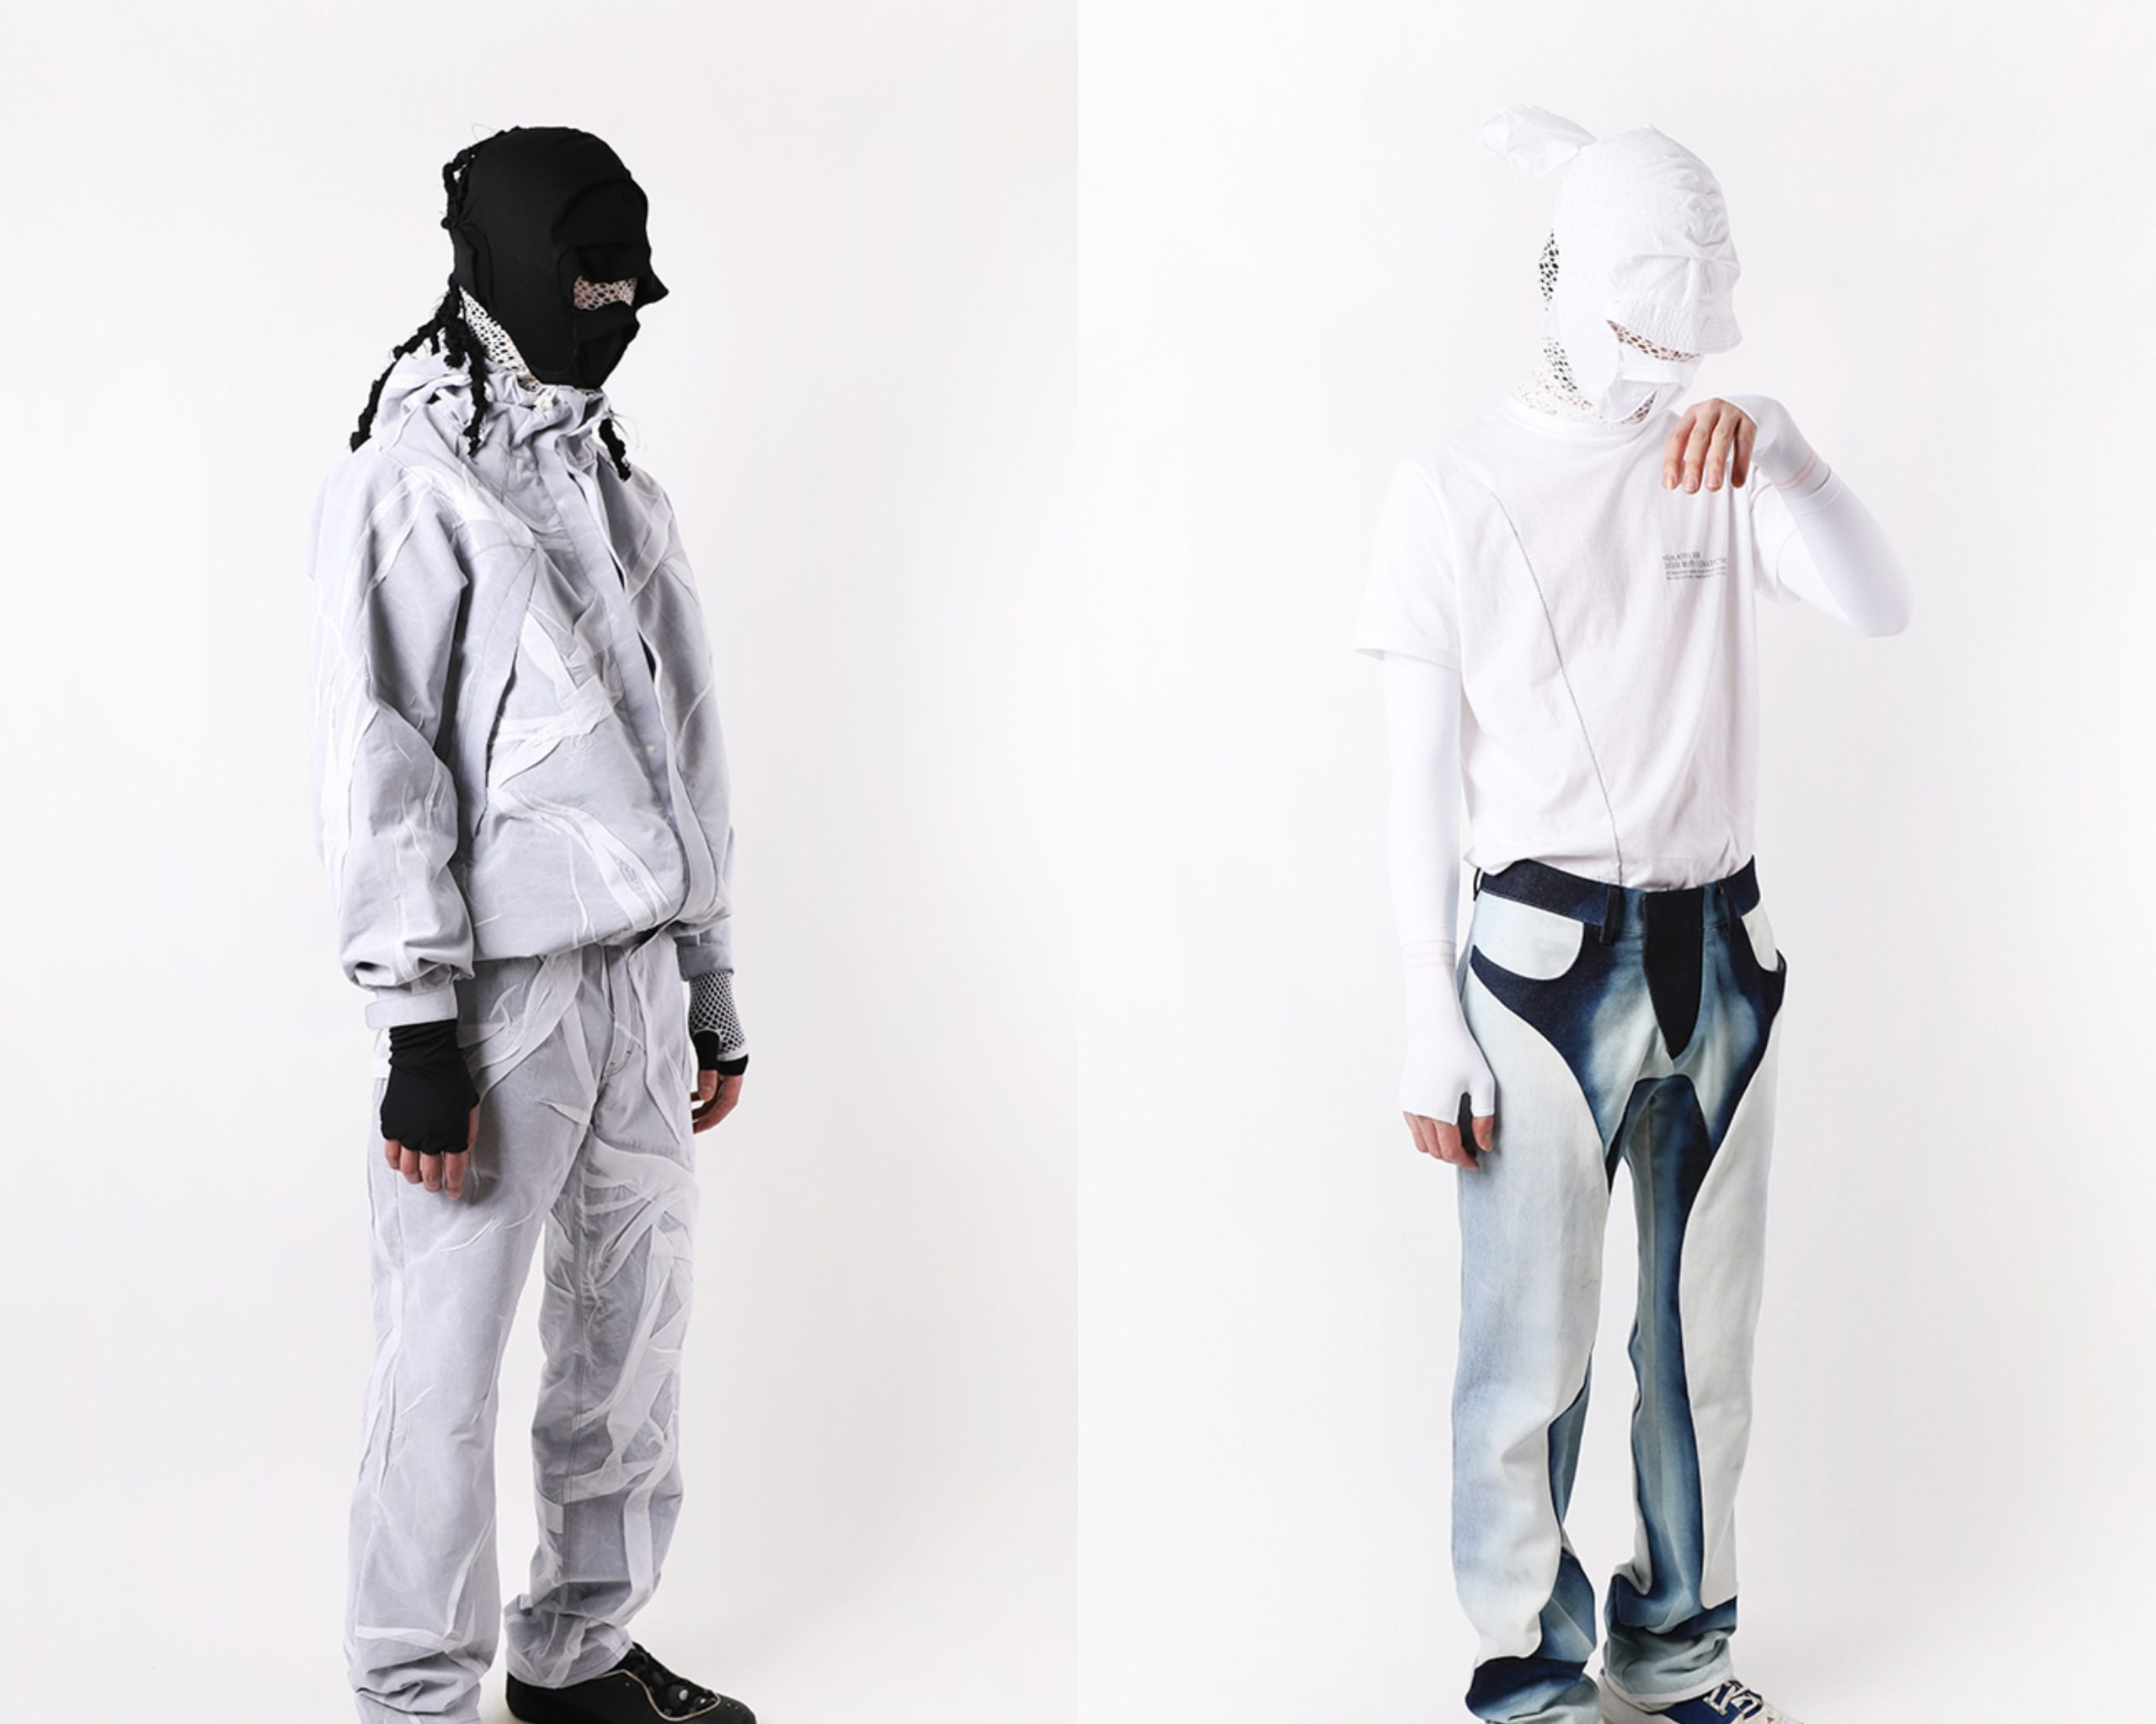 rájn,ATELIER create Video Game Characters for SS20